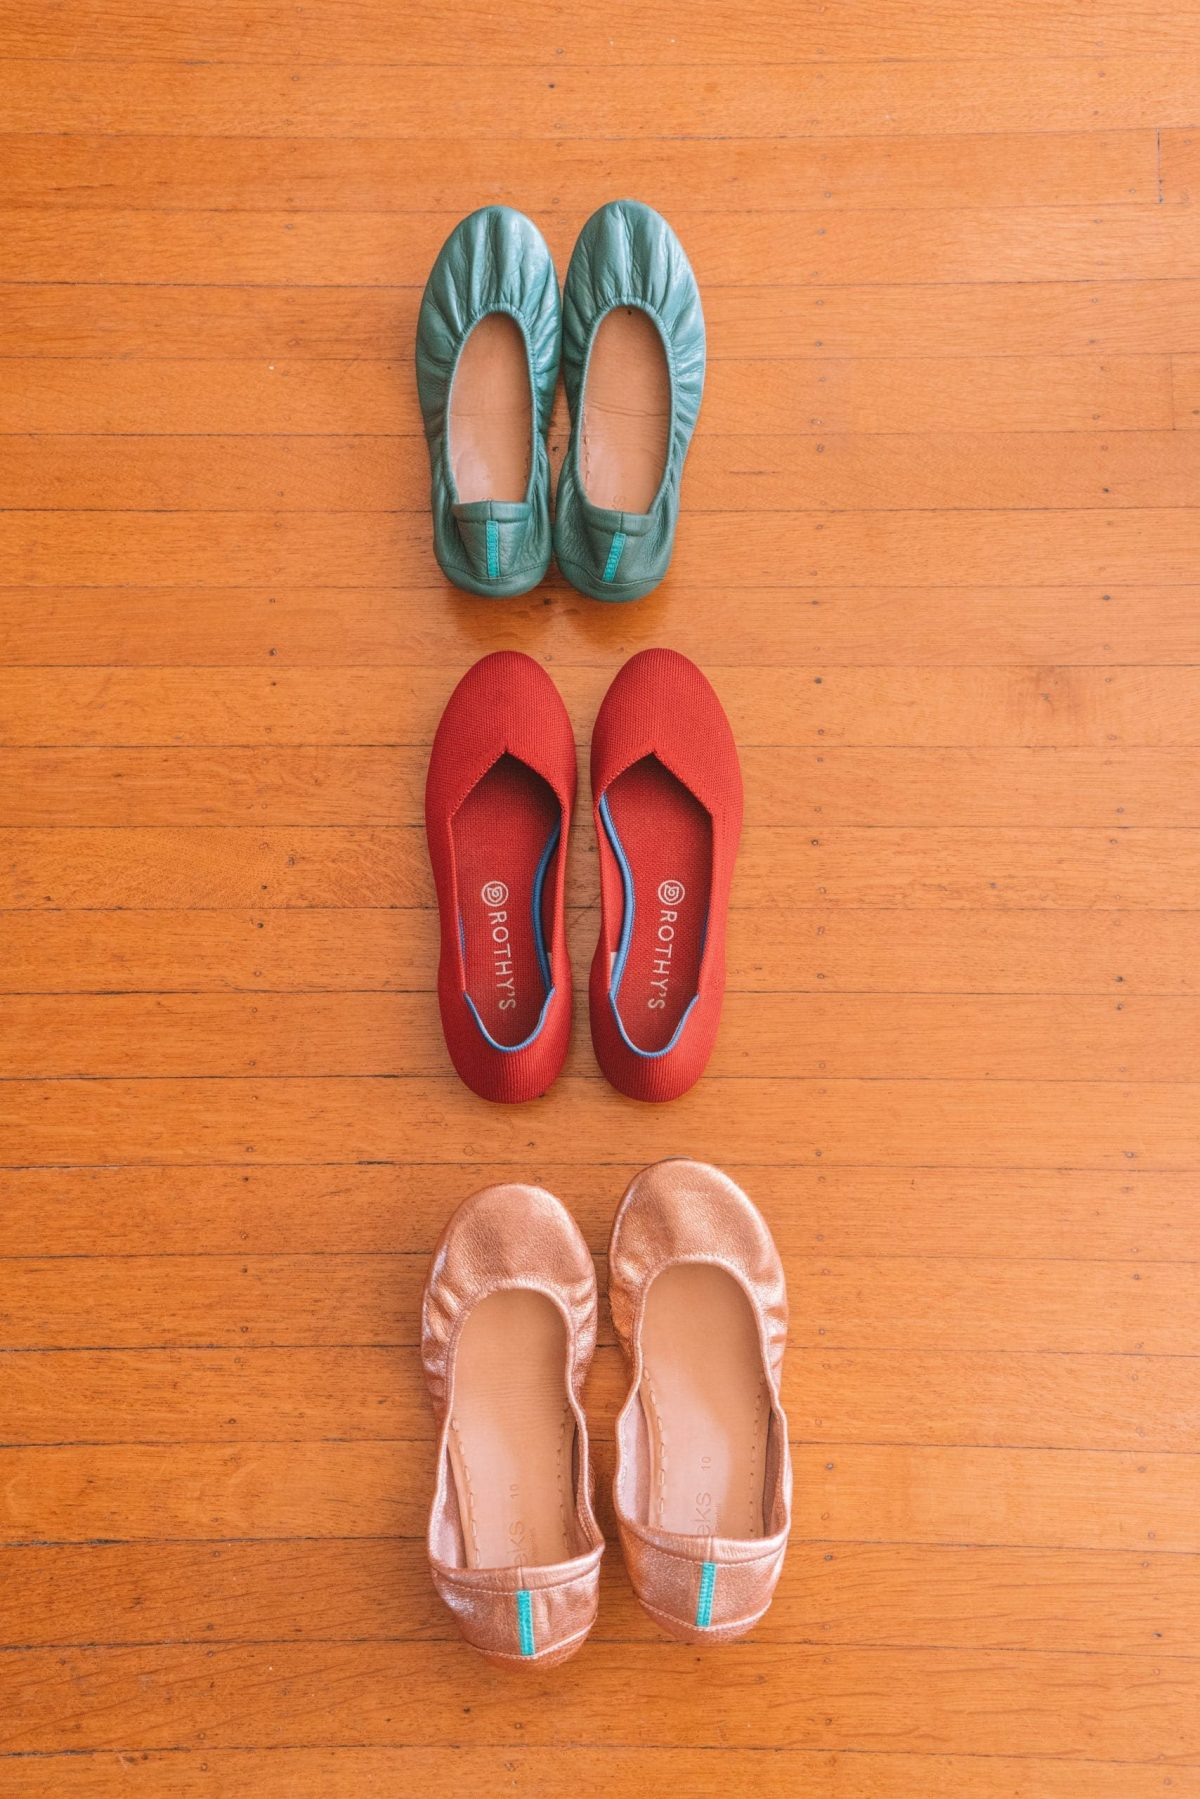 a look at Tieks shoes and rothy's shoes side by side